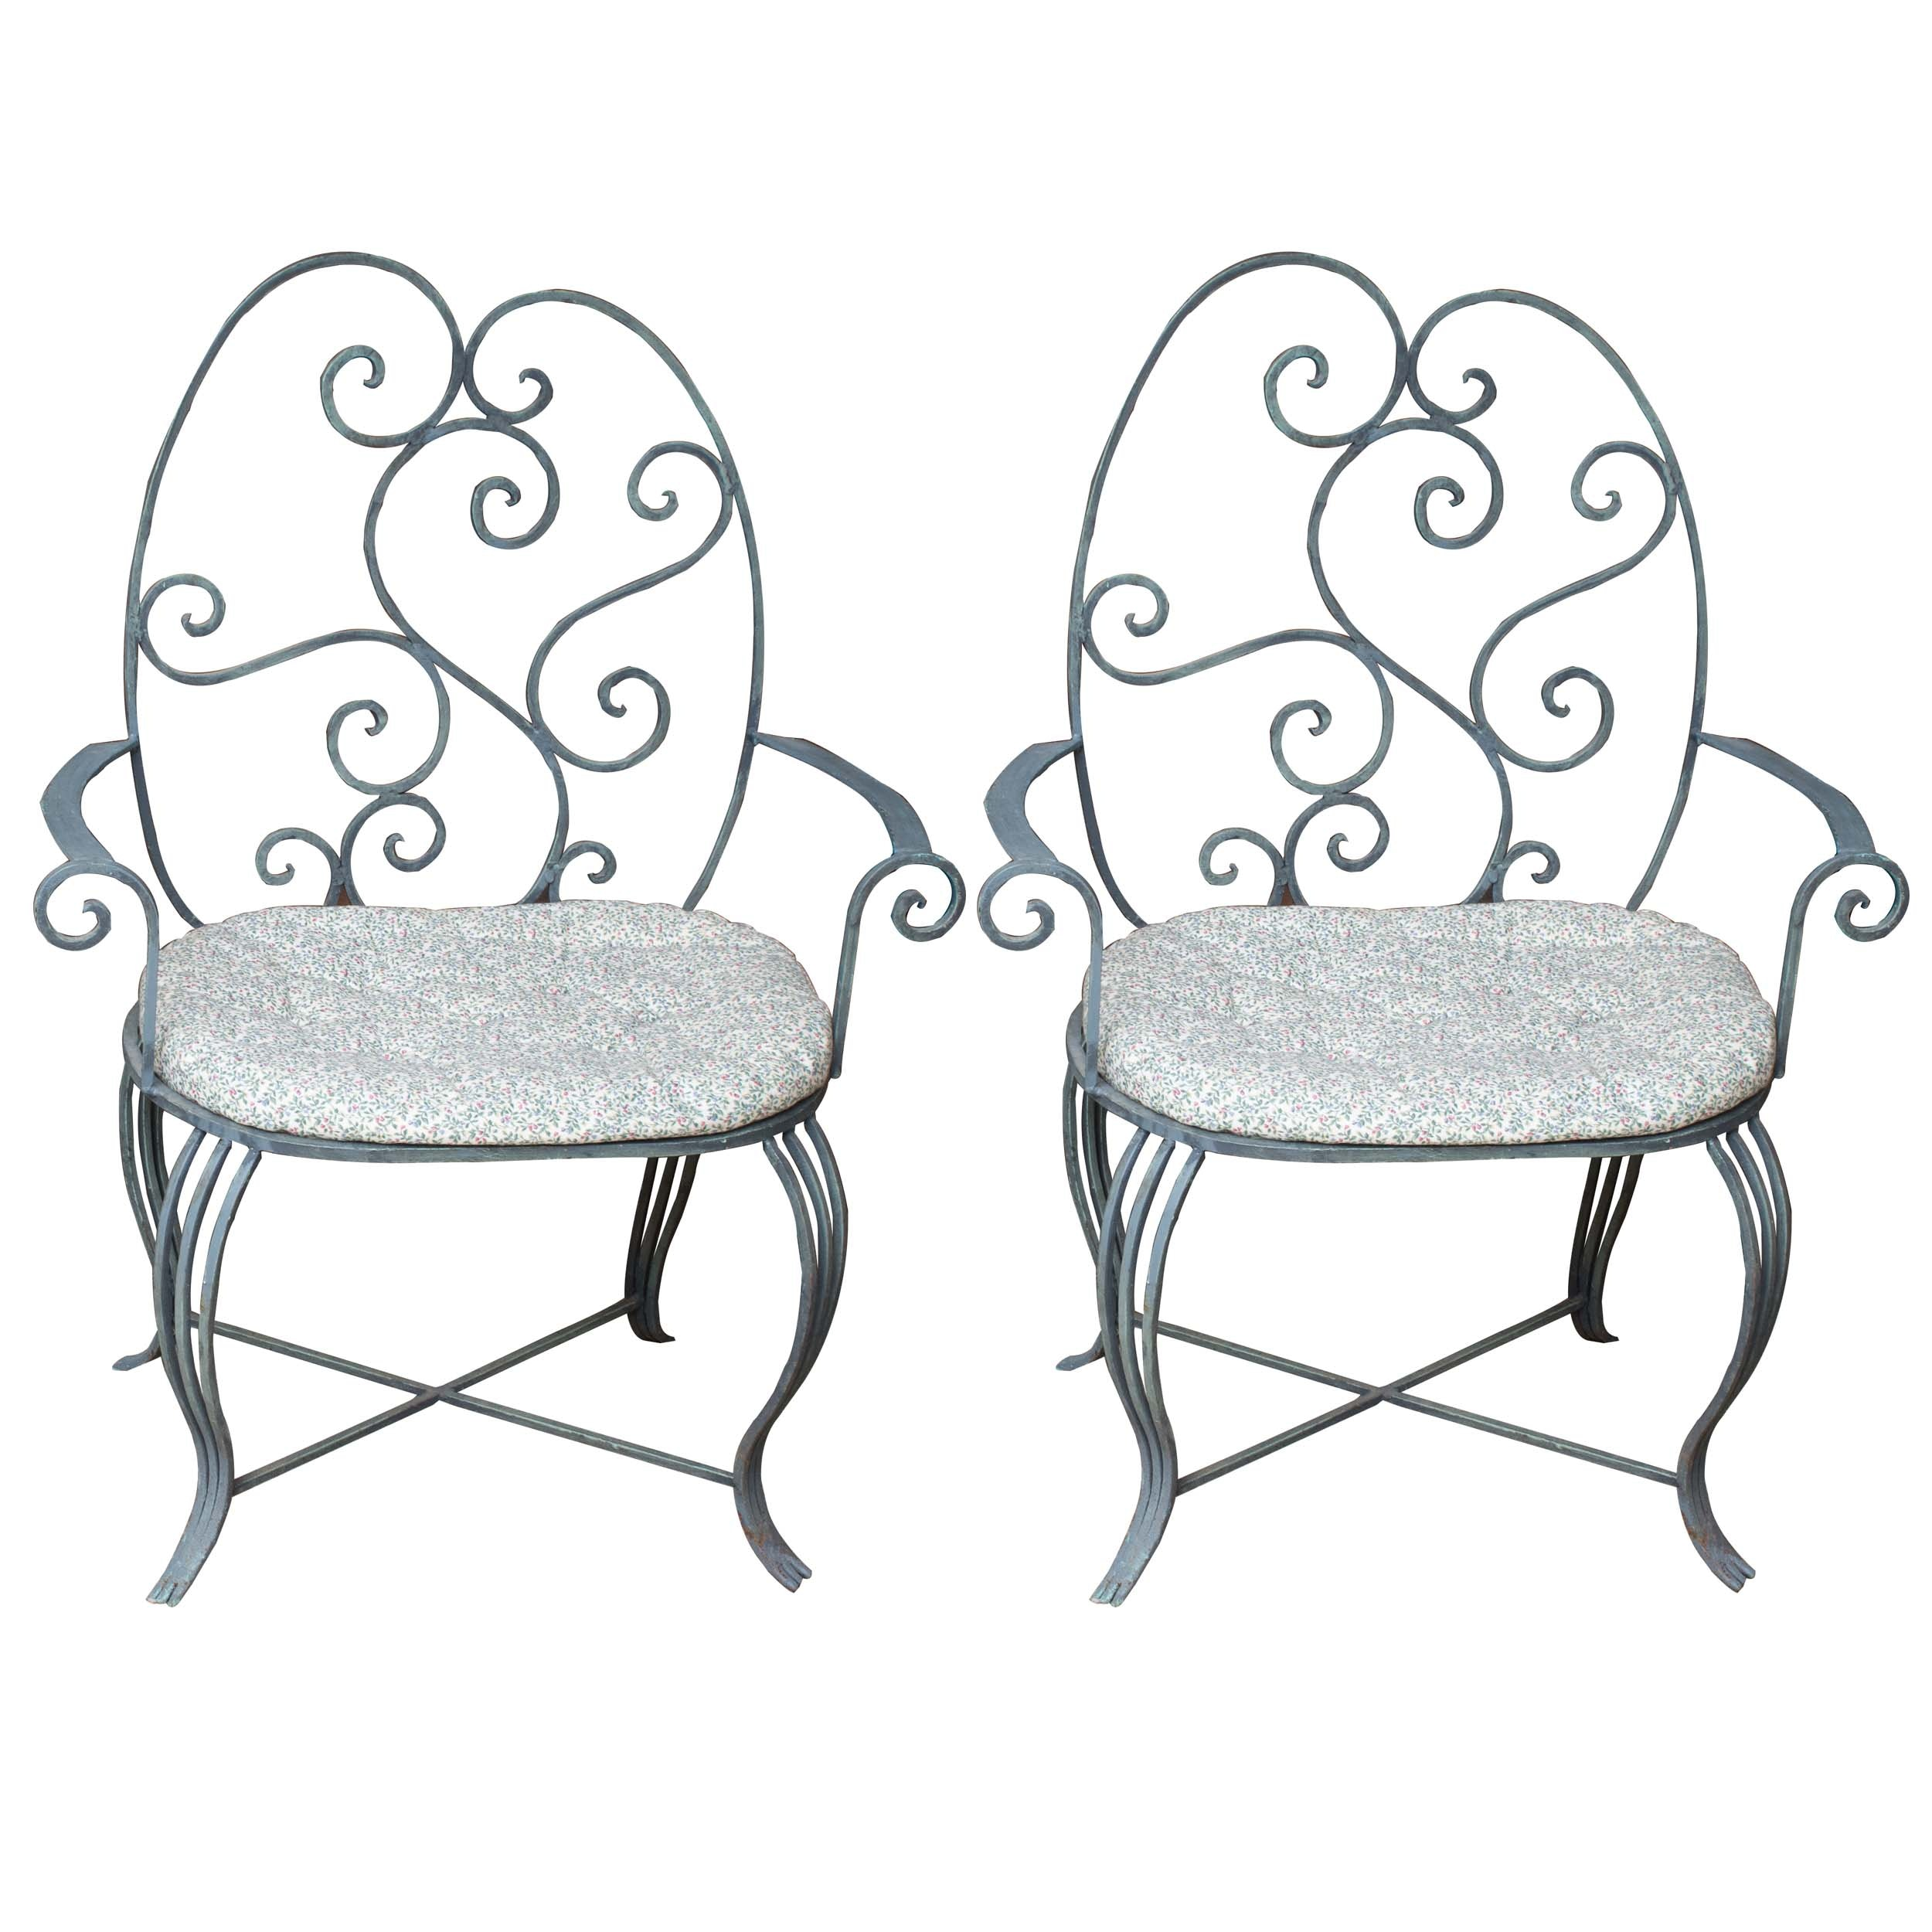 Pair of Wrought Iron Armchairs